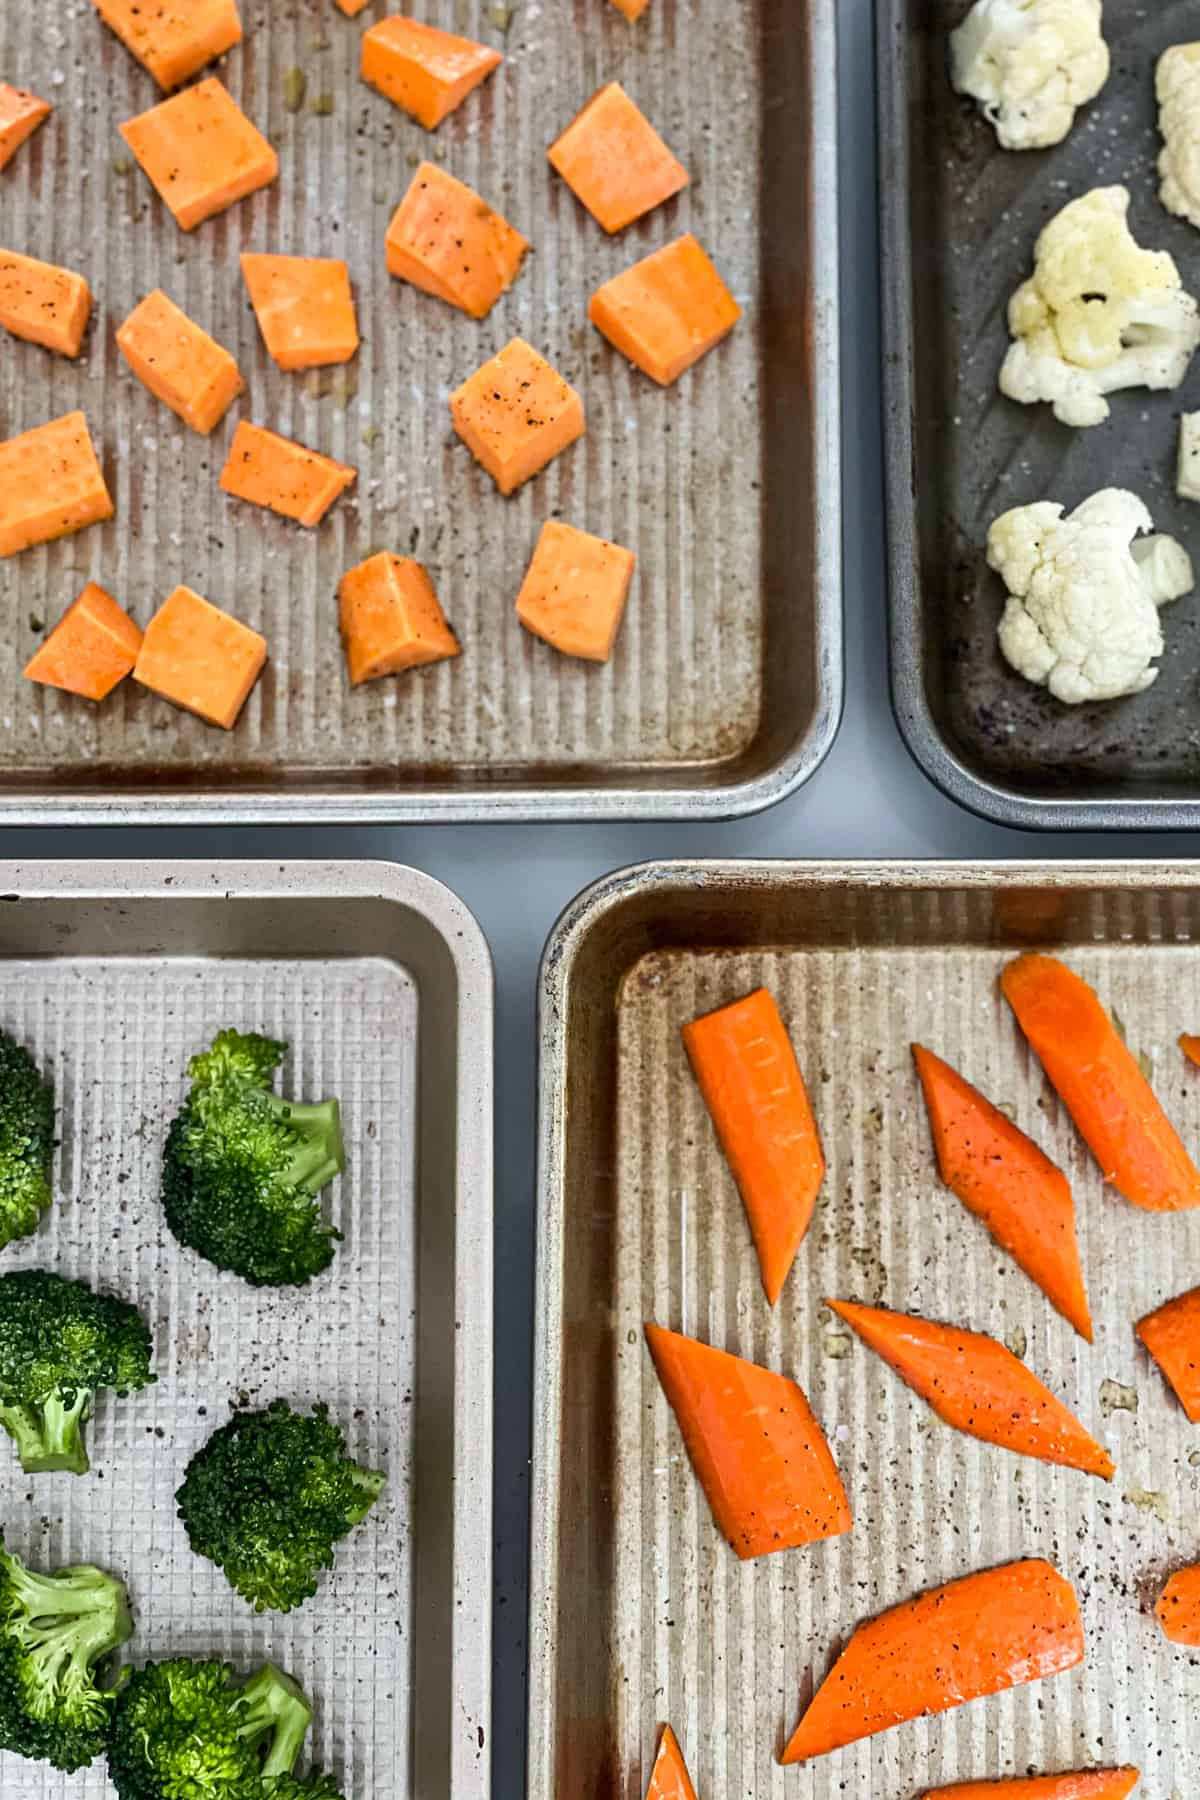 Four sheet pans with chopped vegetables.